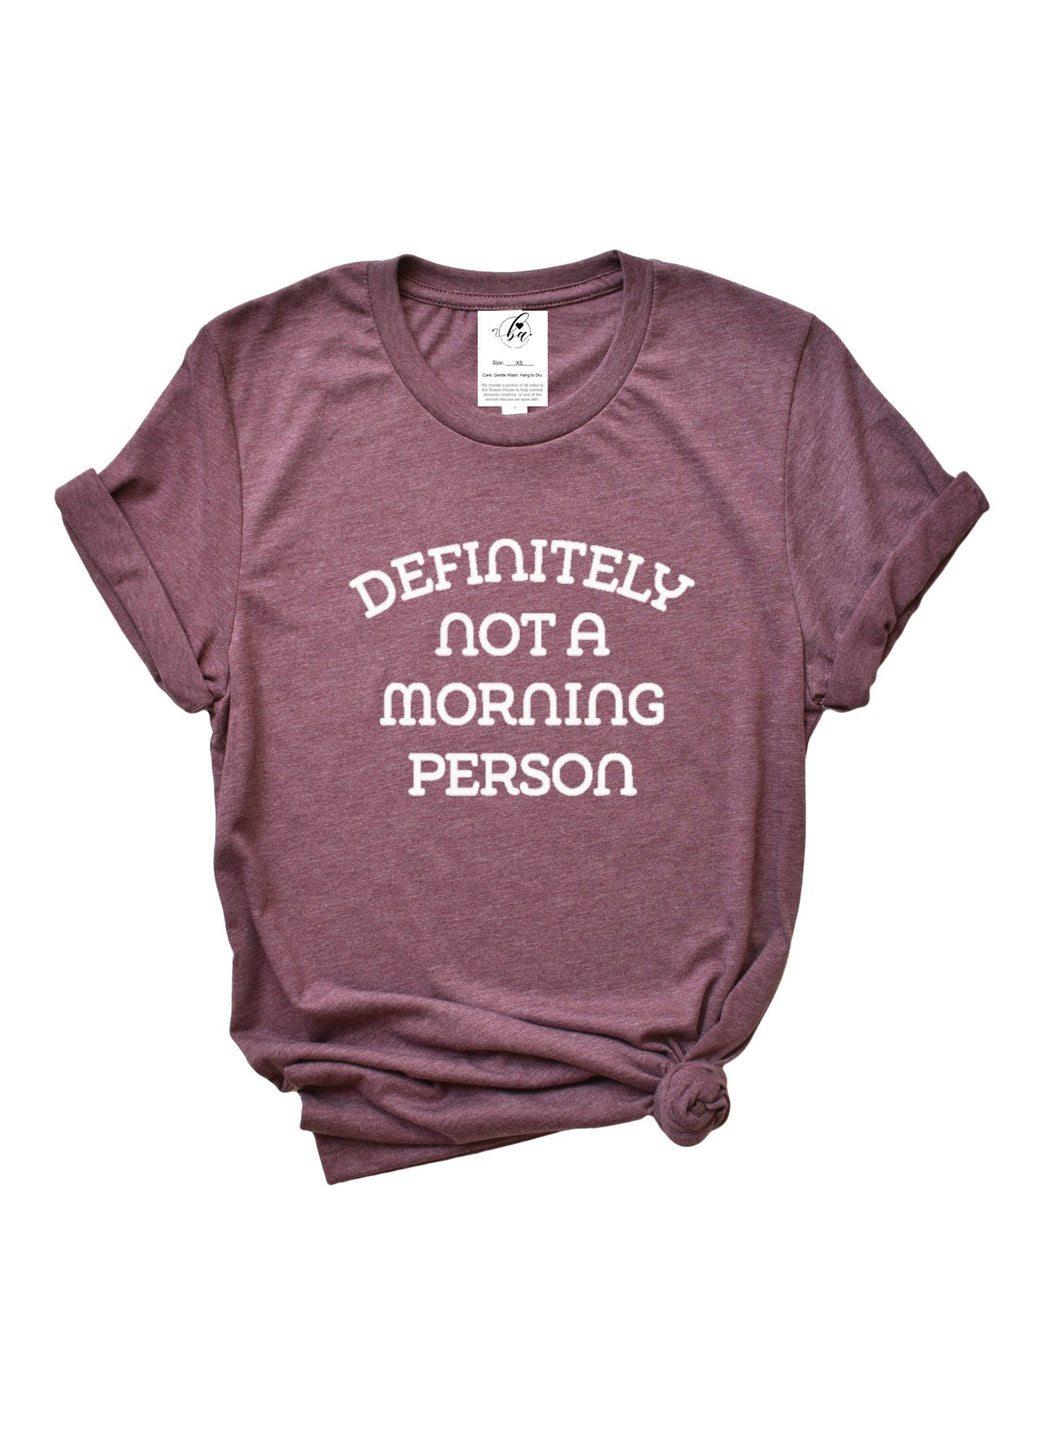 Blonde Ambition Definitely Not a Morning Person Boyfriend Tee